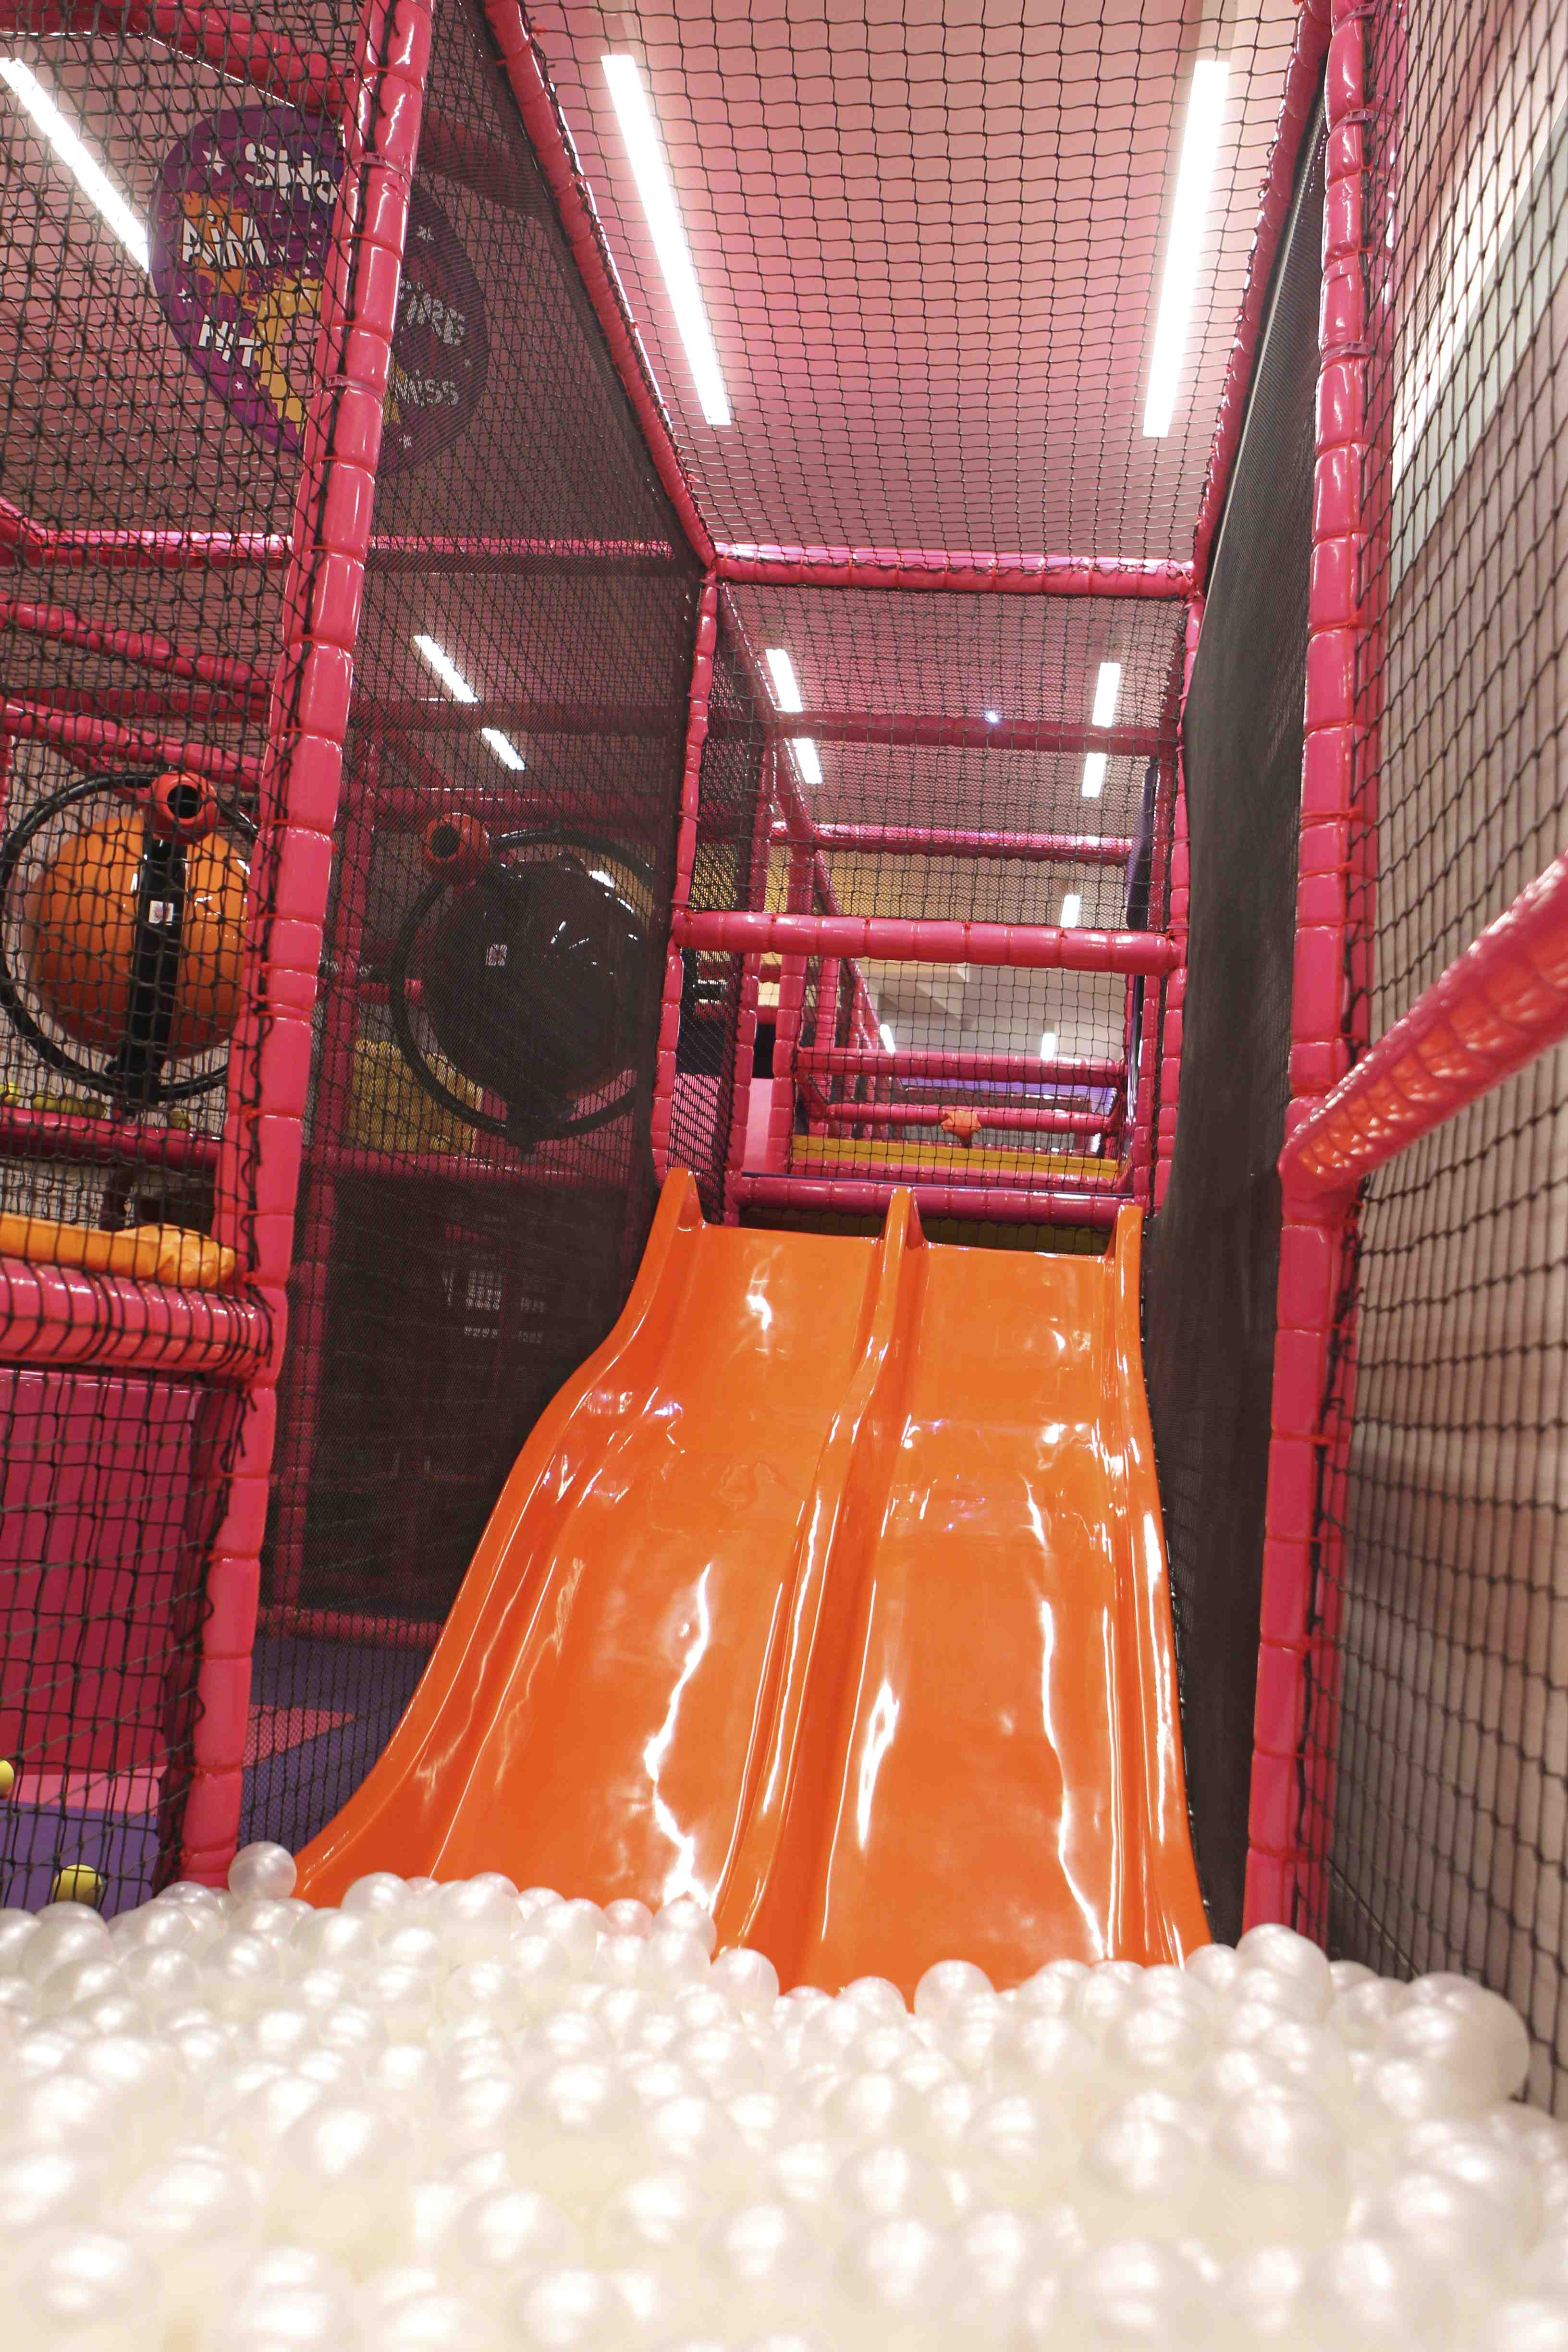 Soft Play - the ball pit at at Purple Dragon, Chelsea